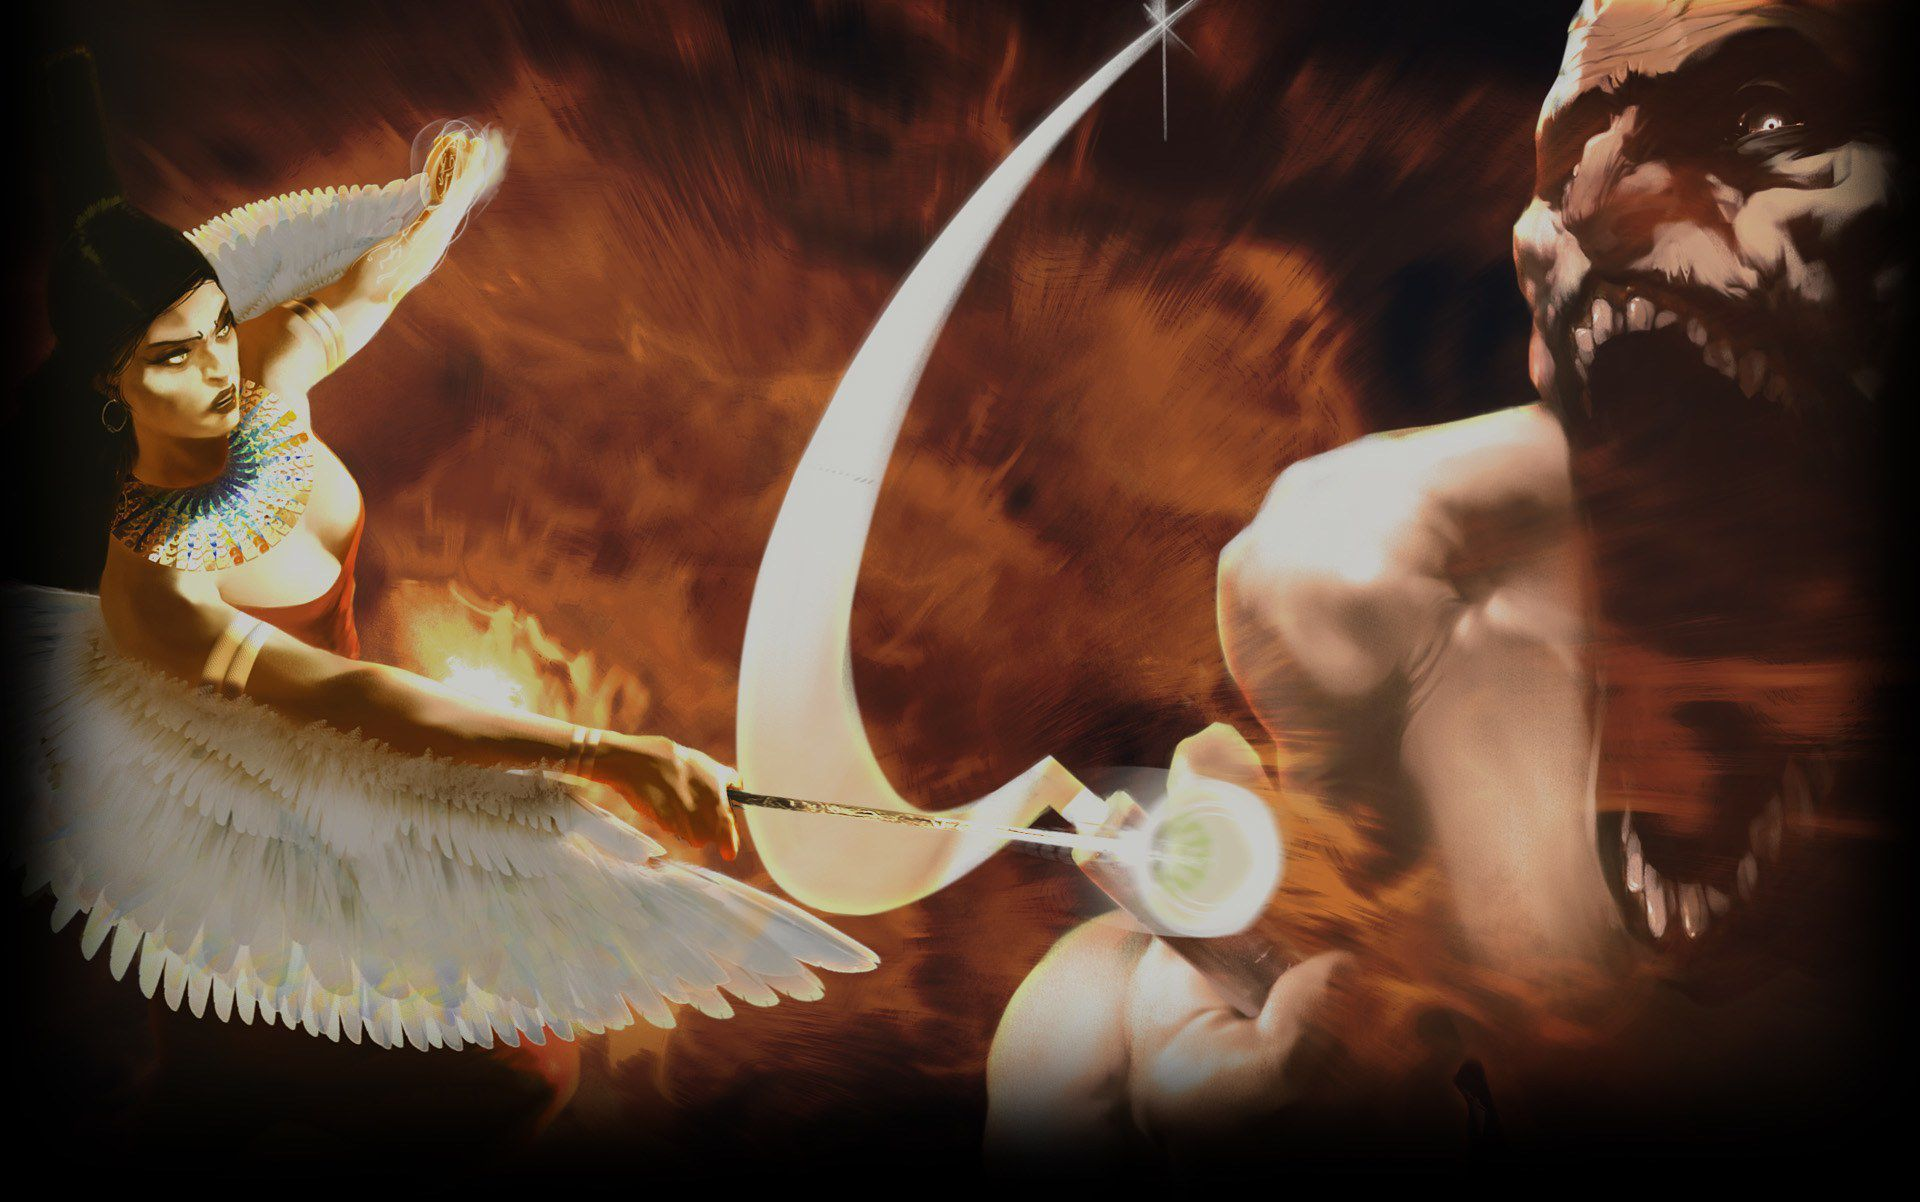 Age Of Mythology Wallpaper Pack